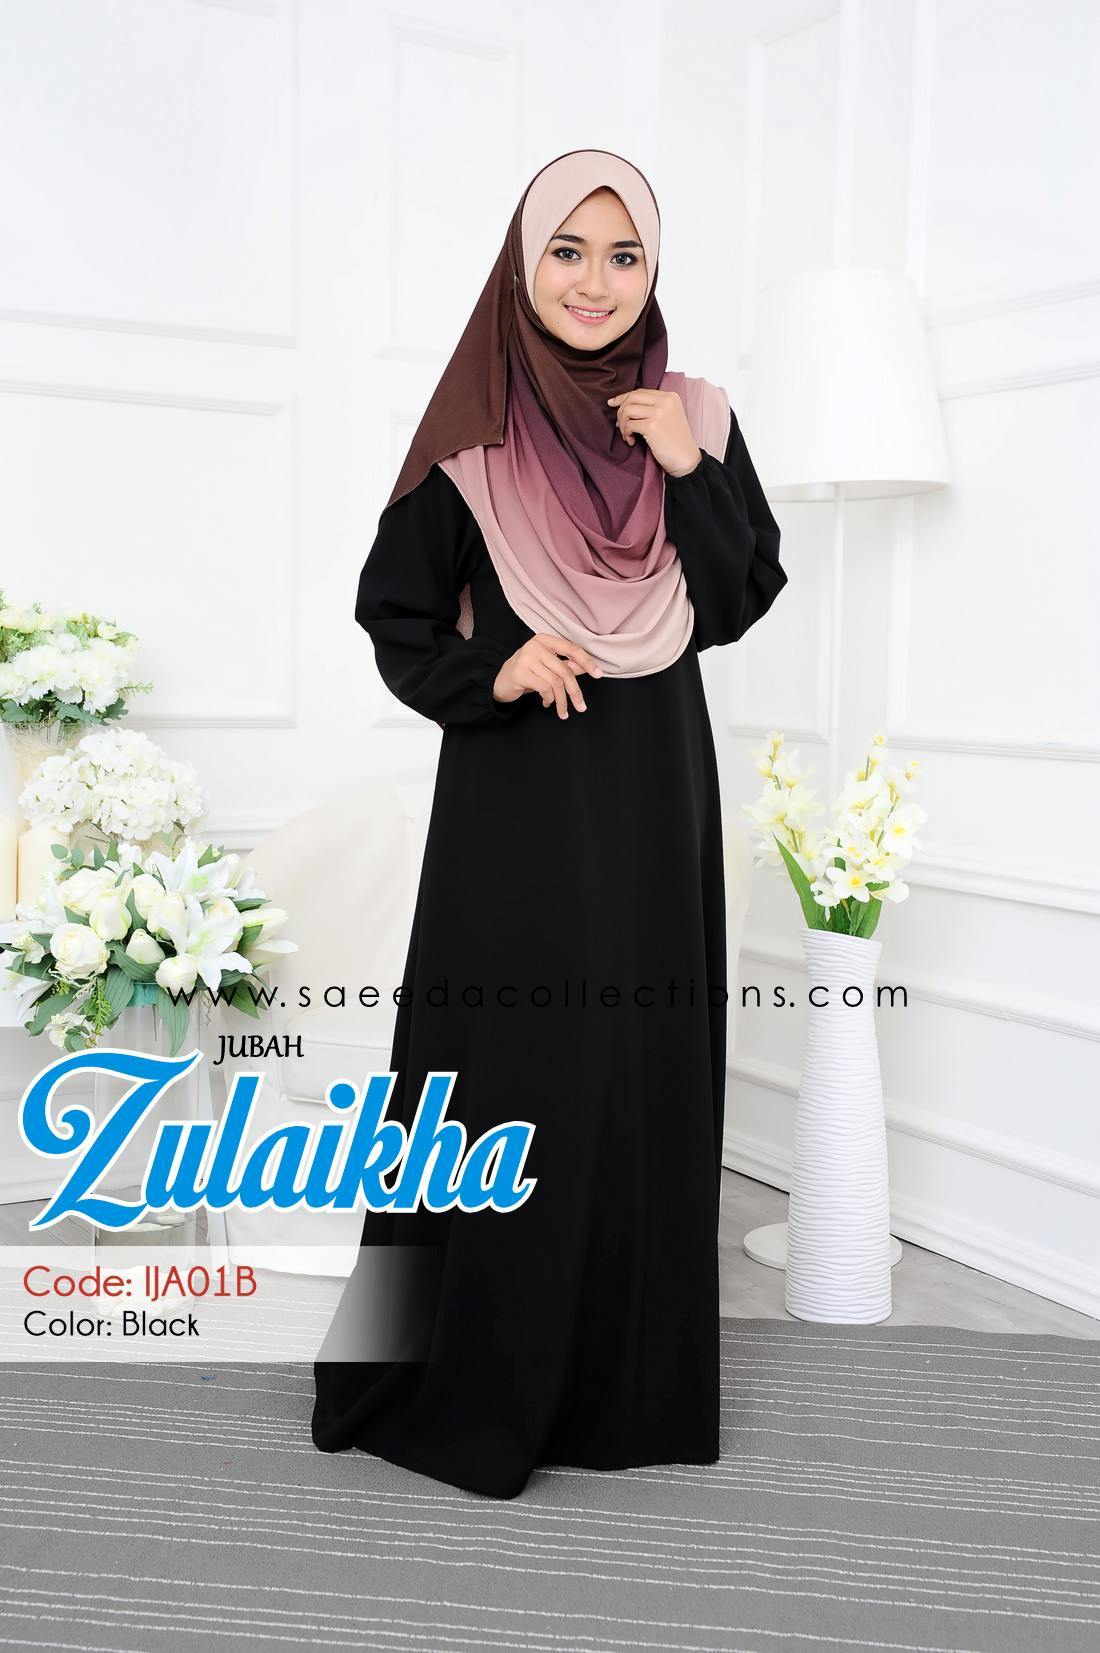 DRESS POLYCREPE ZULAIKHA IJA01B